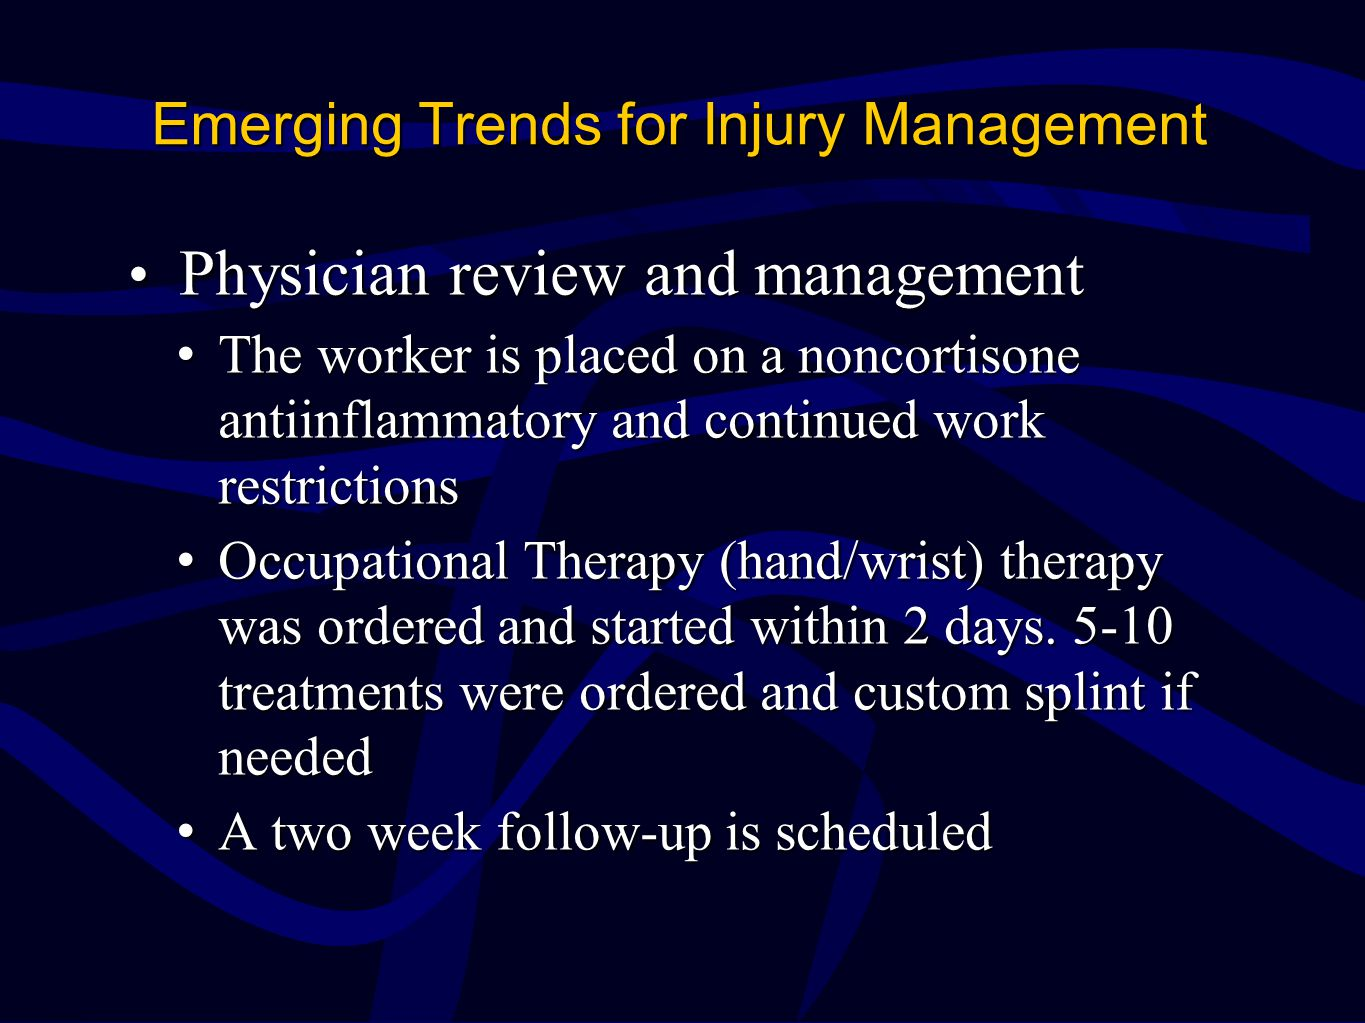 Emerging Trends for Injury Management Physician review and management Physician review and management The worker is placed on a noncortisone antiinflammatory and continued work restrictionsThe worker is placed on a noncortisone antiinflammatory and continued work restrictions Occupational Therapy (hand/wrist) therapy was ordered and started within 2 days.